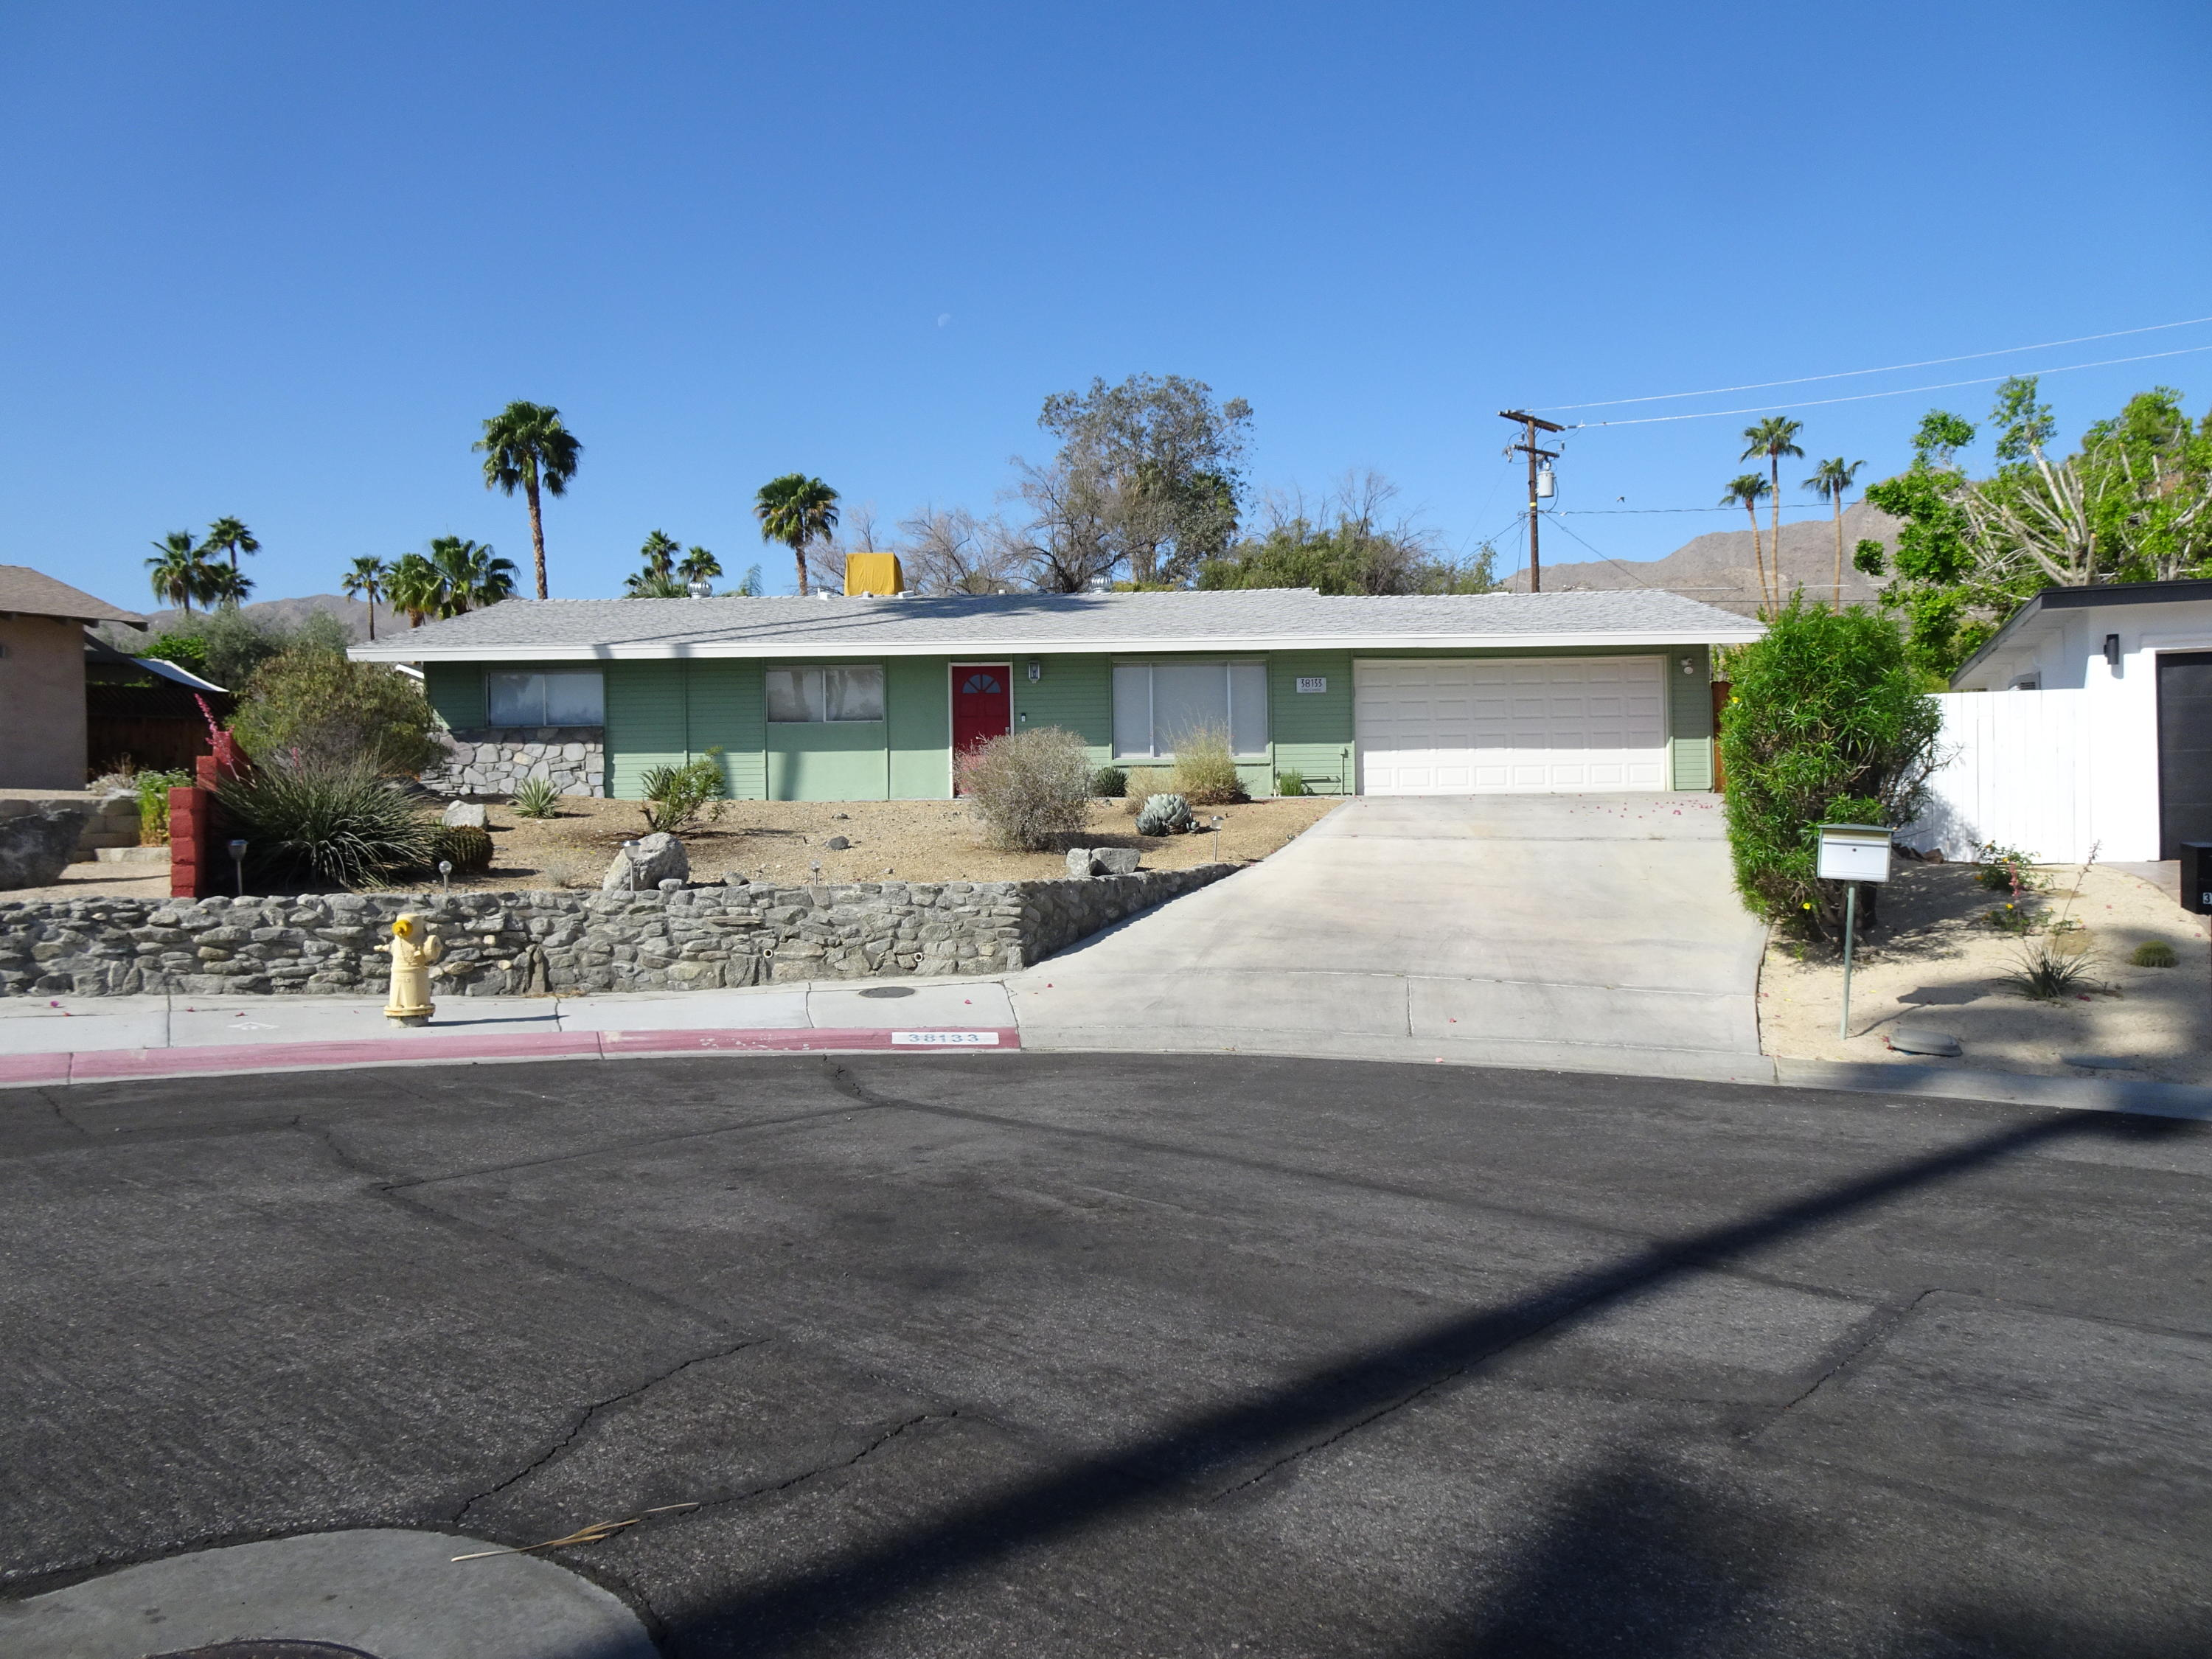 A superior location on an isolated Cul De Sac high in the Cathedral City Cove makes this mid-century jewel the perfect home for any need!  A classic rambler, complete with multi texture façade it sits high upon an elevated lot affording majestic mountain views. The huge fully fenced back yard with pool, covered patio, and Weber bar-b-que makes it perfect for very private parties large and small.  Enter into a spacious great room with vaulted ceilings opened up by the previous owner. An attic space with bevel block windows was also created accentuating the homes mid- century charm. Title records show a 3rd bedroom but it too appears to have been opened up to create a den space. Leave it as is or add a French Door entry and some doors to the existing closet space and ''presto-chango'' it's a bedroom again! Purists will appreciate some of the original mid-century elements remaining throughout the home such as vents, shower and kitchen tile and appliances. Other accents have been added over the years such as a stand-alone sink, black and white basket weave flooring, sconces and other lighting fixtures.  The great room kitchen has been modernized with a stainless island range hood over the gas cooktop. Often overlooked green features include energy saving evaporative cooler and WiFi thermostat. The  garage door opener is super quiet. Minutes from Mary Pickford Theater, City Hall, Civic Center, Restaurants, and the new Aqua Caliente Casino! No HOA!  Make an offer today!